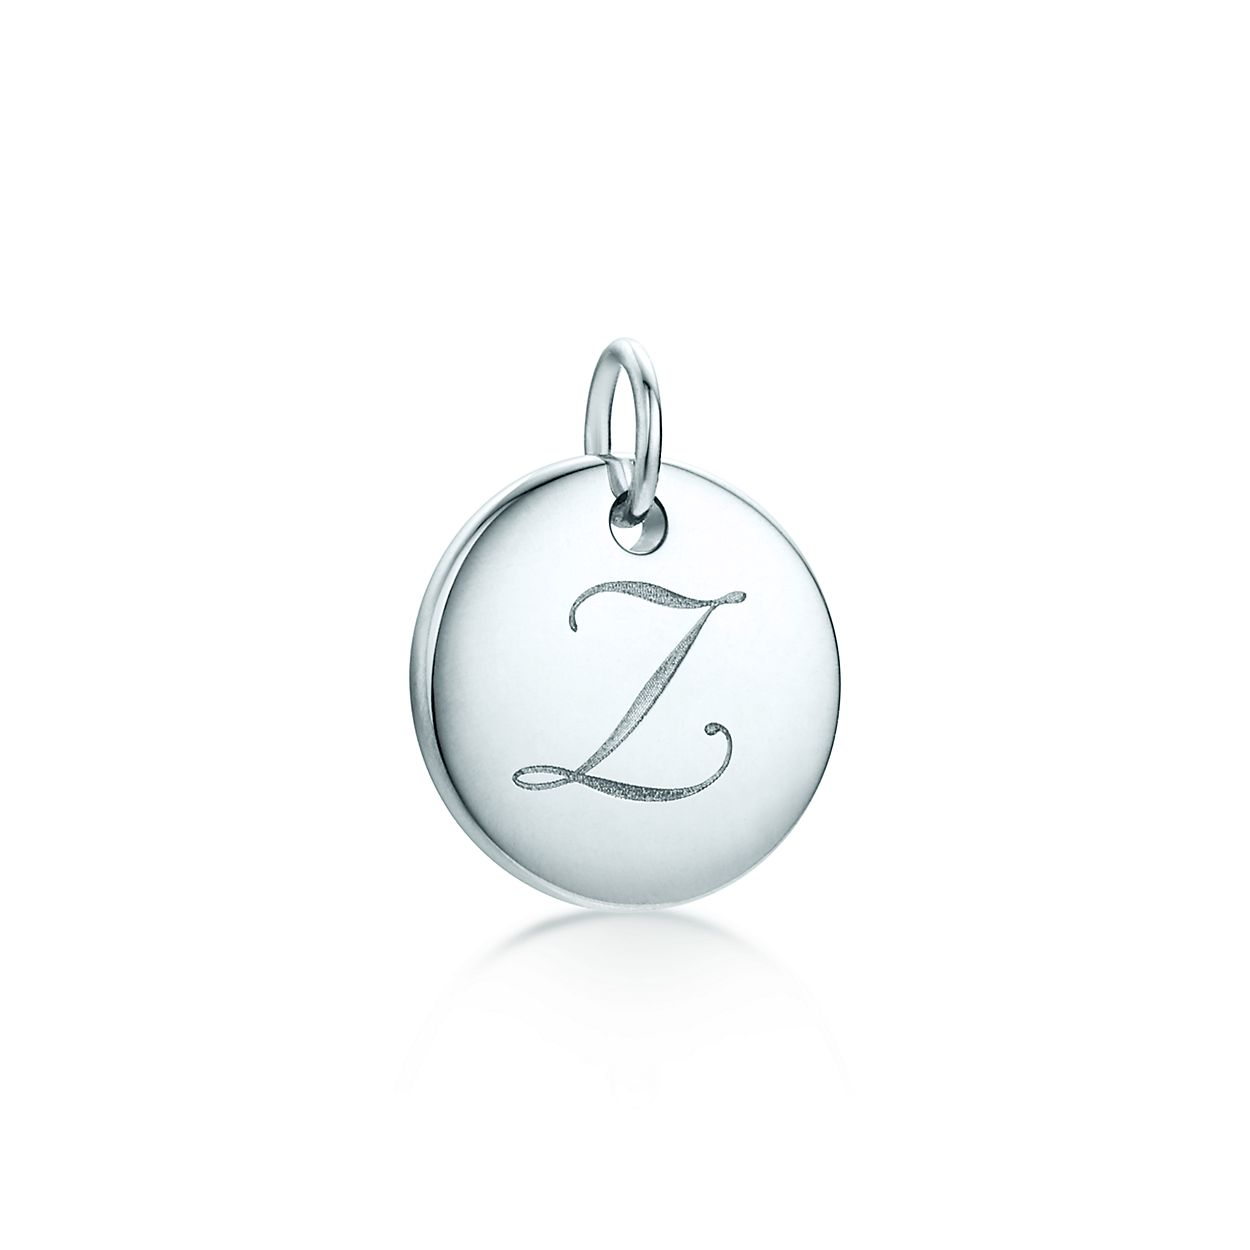 Tiffany Notes alphabet disc charm in silver, small Letters A-Z available - Size Z Tiffany & Co.